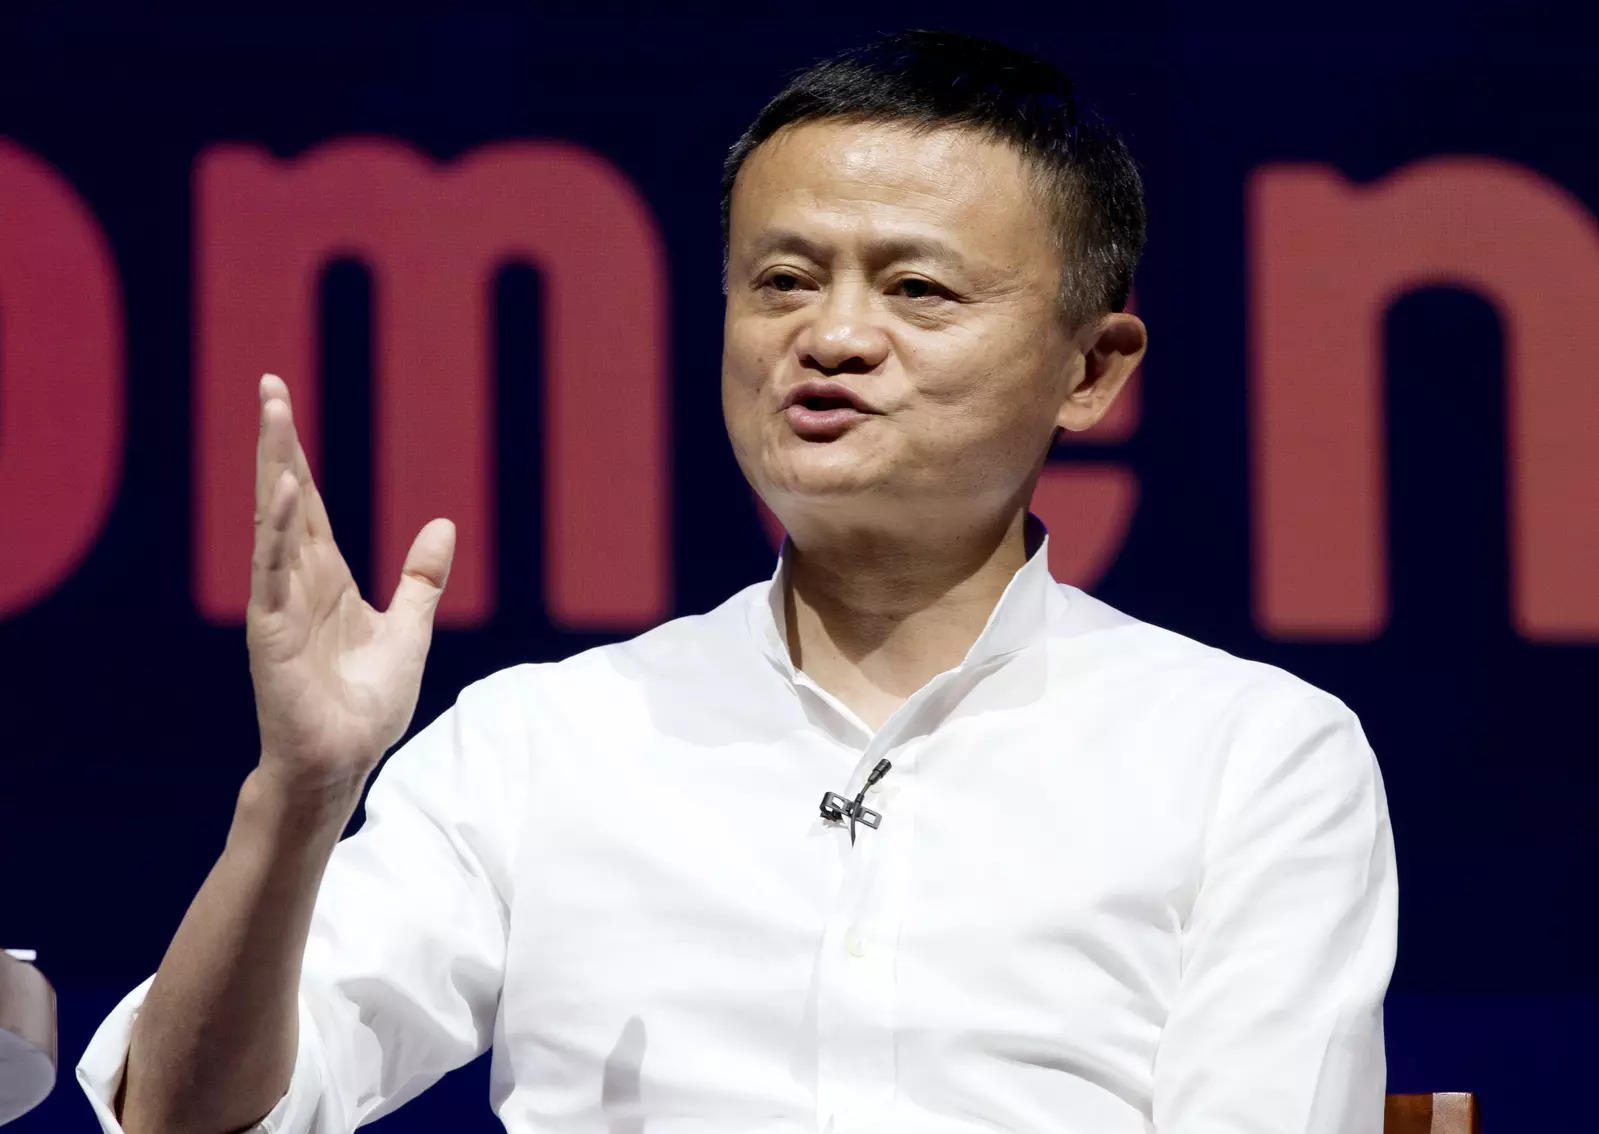 Jack Ma's reappearance fails to soothe all investor concerns about regulatory crackdown